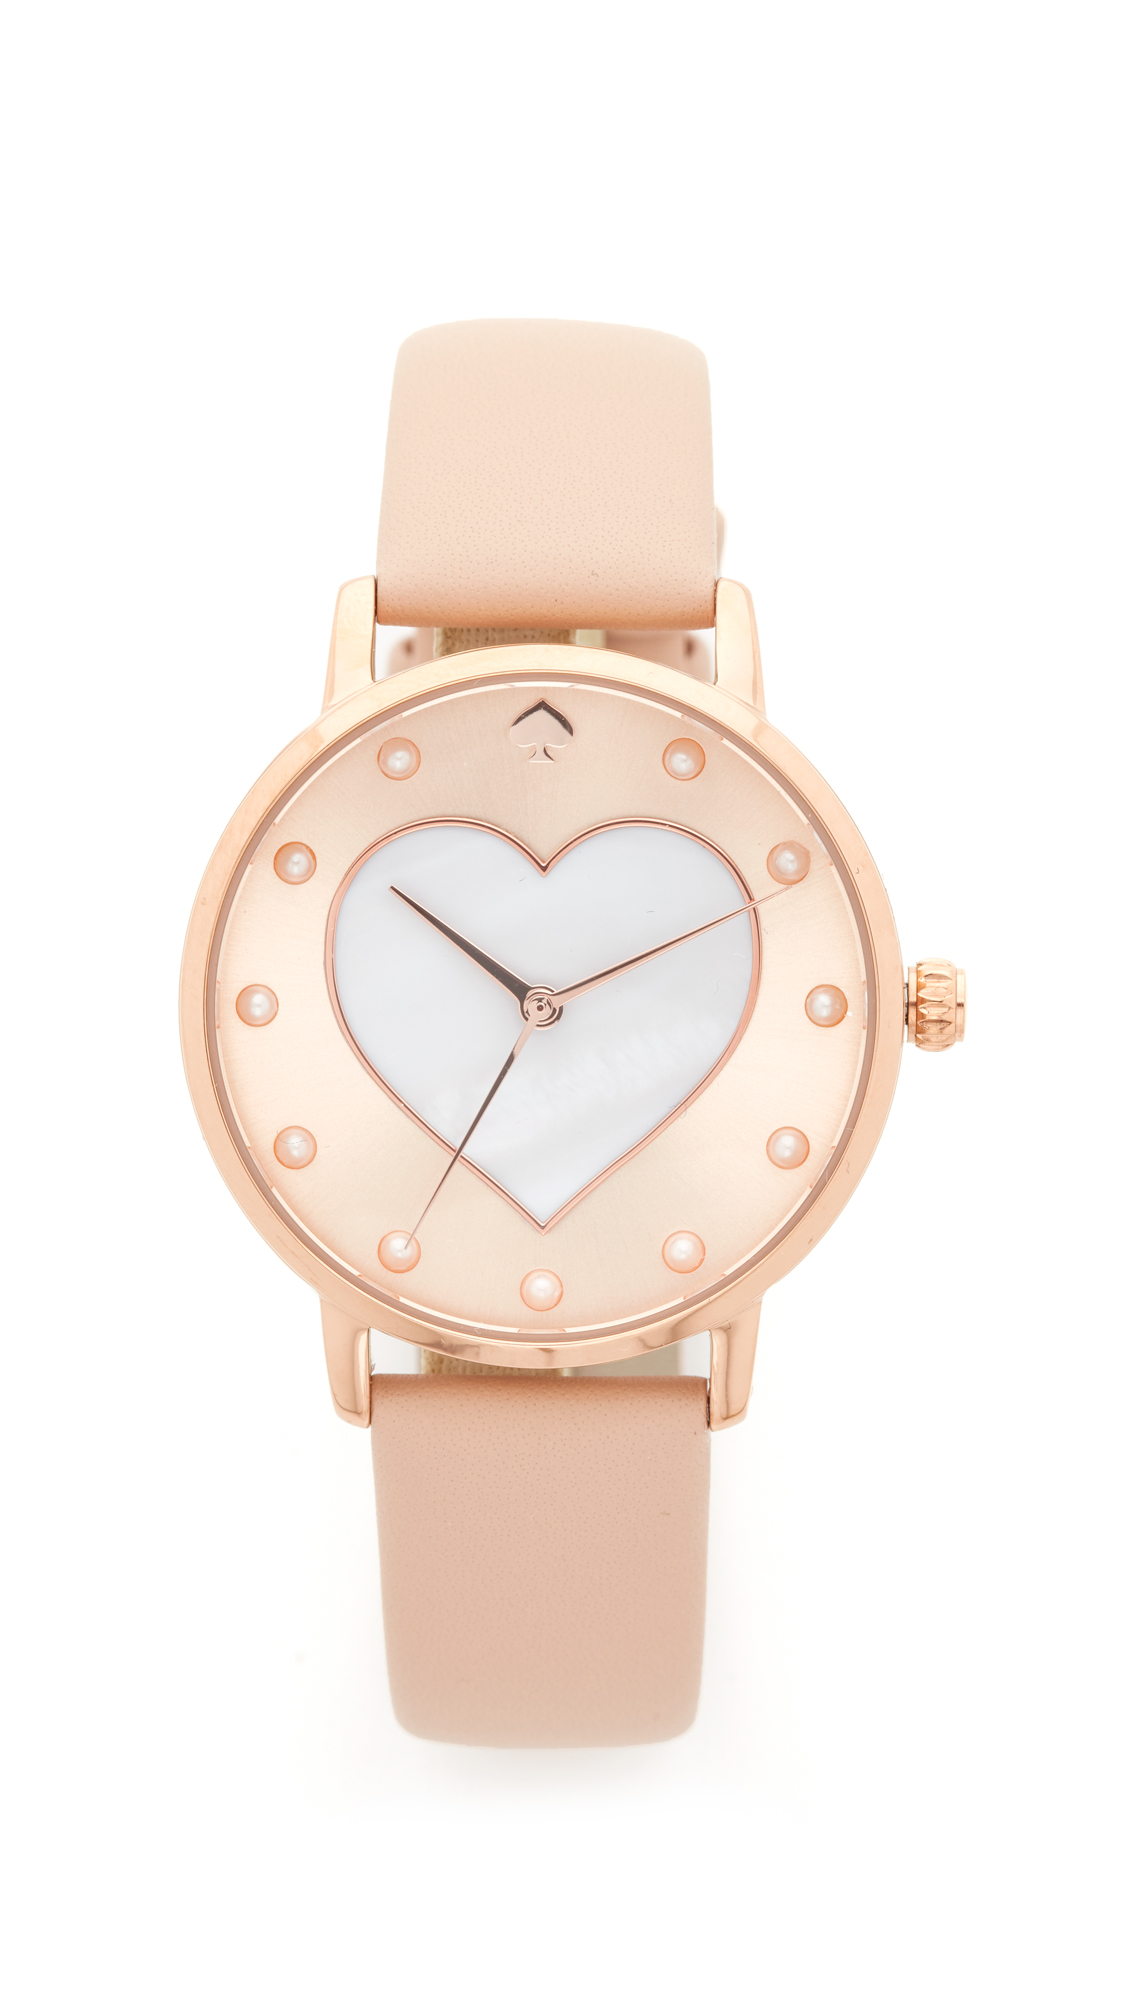 Kate Spade New York Novetly Watch - Rose Gold at Shopbop